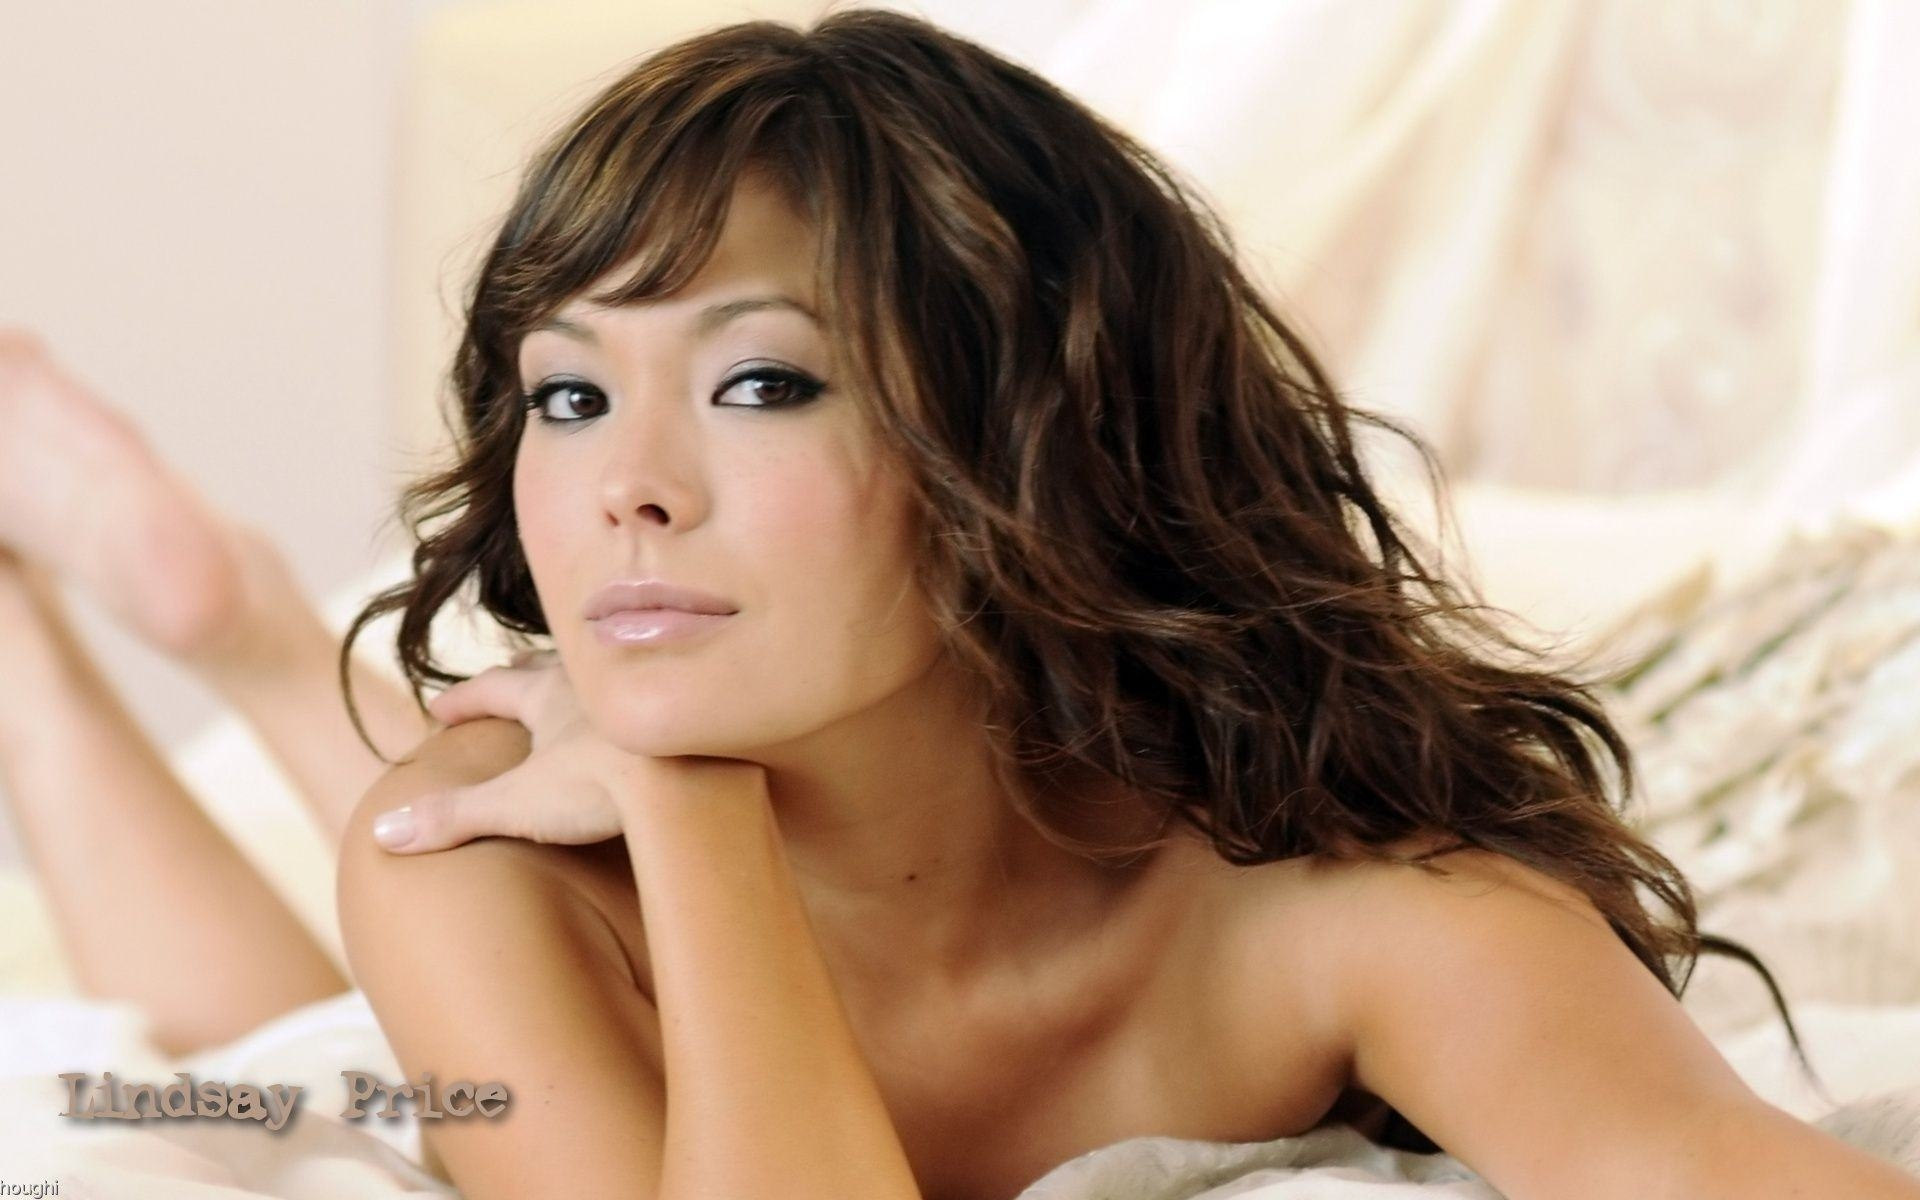 Wallpapers Backgrounds   Lindsay price maxim 1920 1200 Wallpapers 1920x1200